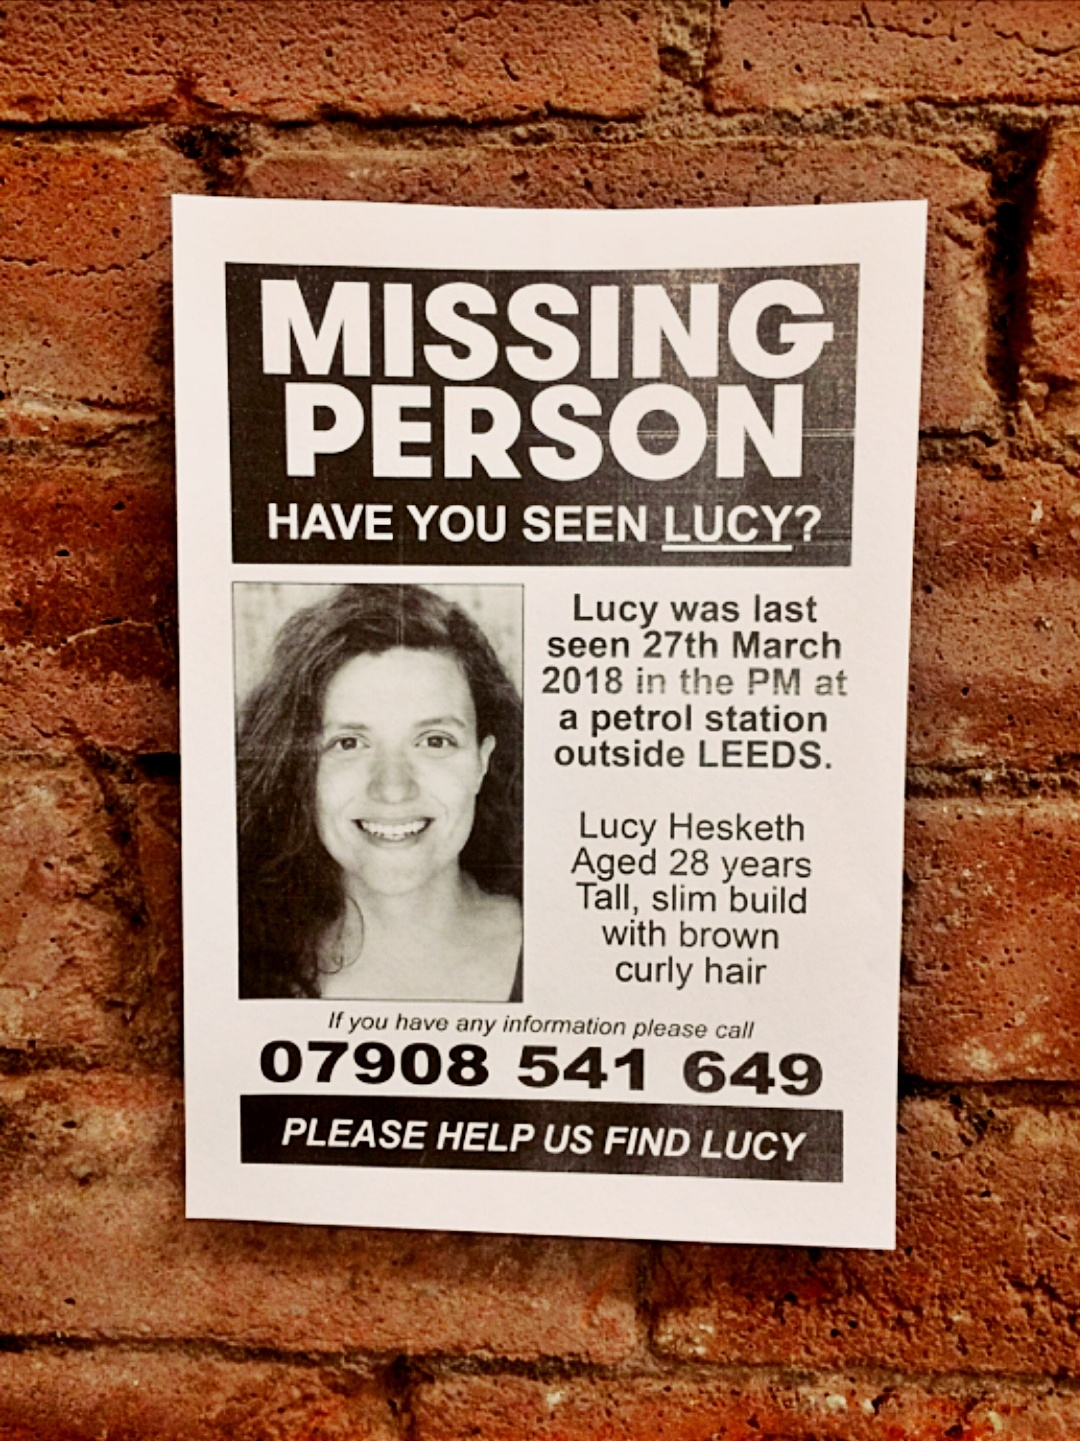 Lucy is missing - The Lucky Ones, immersive theatre experience by Riptide Leeds, review by BeckyBecky Blogs